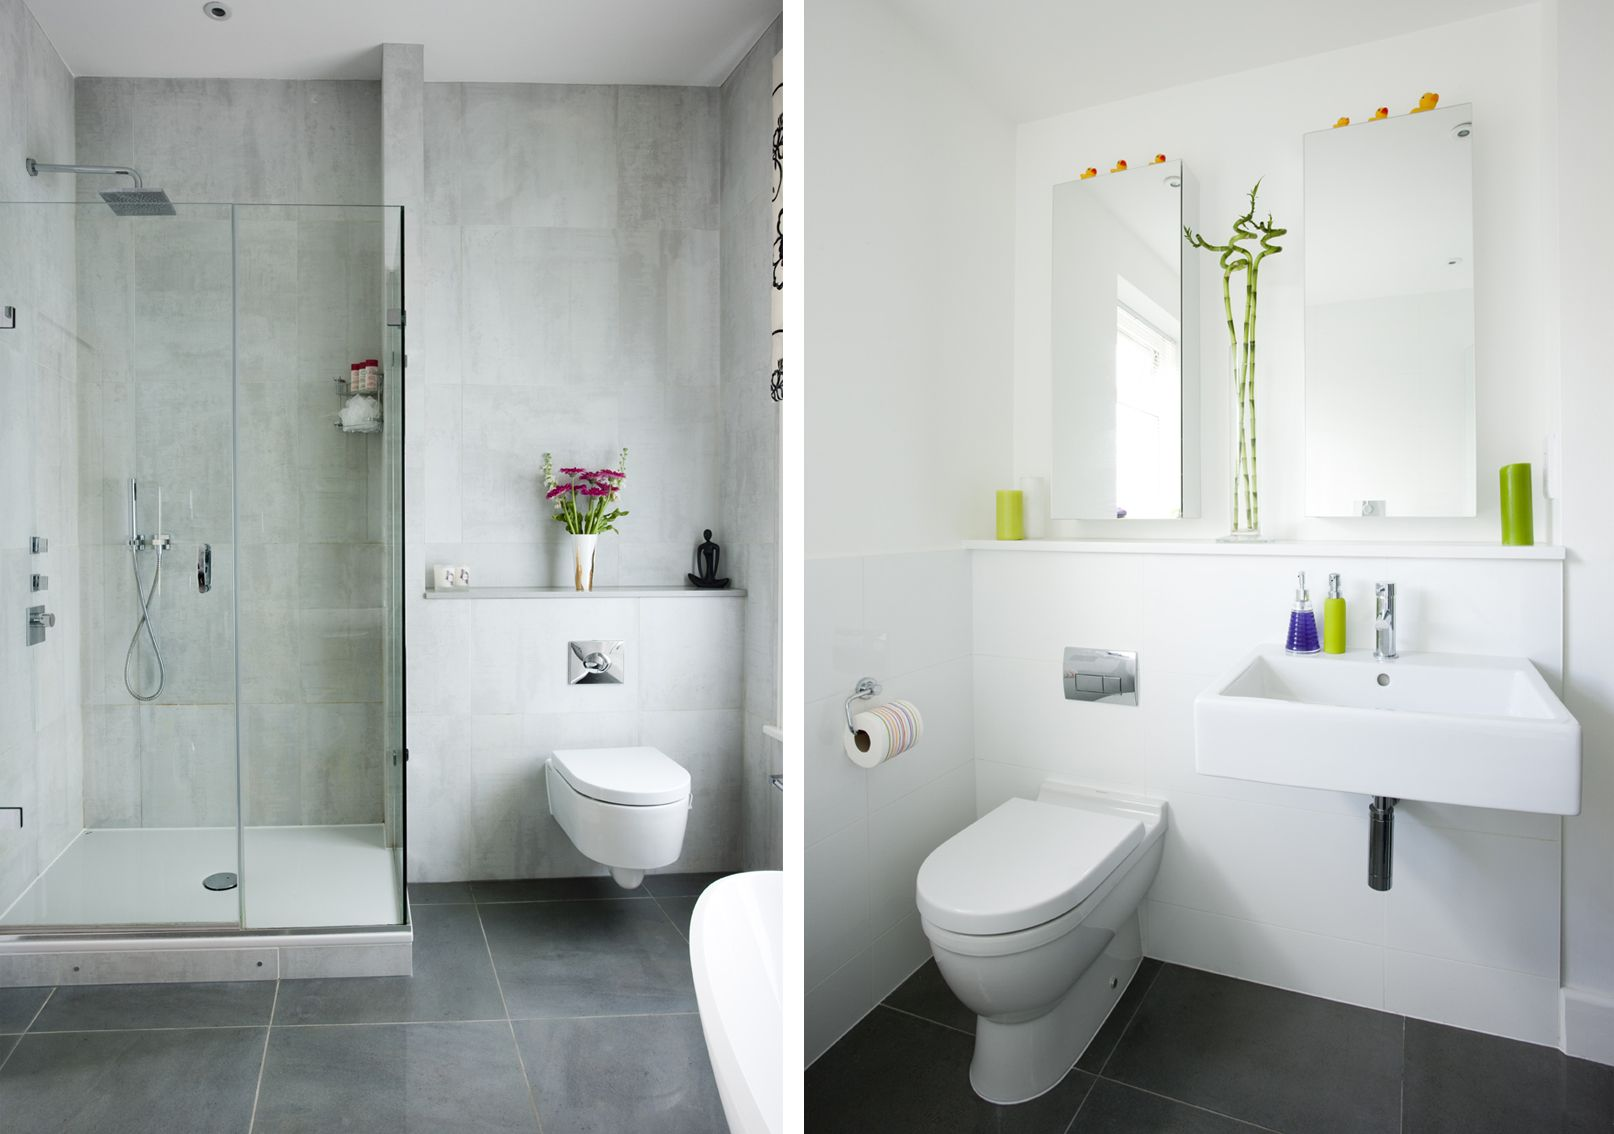 Famous Bathroom Shower Ideas Small Tiny Bathroom Suppliers London Ontario Solid Natural Stone Bathroom Tiles Uk Average Cost Of Refinishing Bathtub Young Bathroom Wall Panelling ColouredBathroom Sink Top View 1000  Images About Bathroom Grey On Pinterest | Pavilion ..